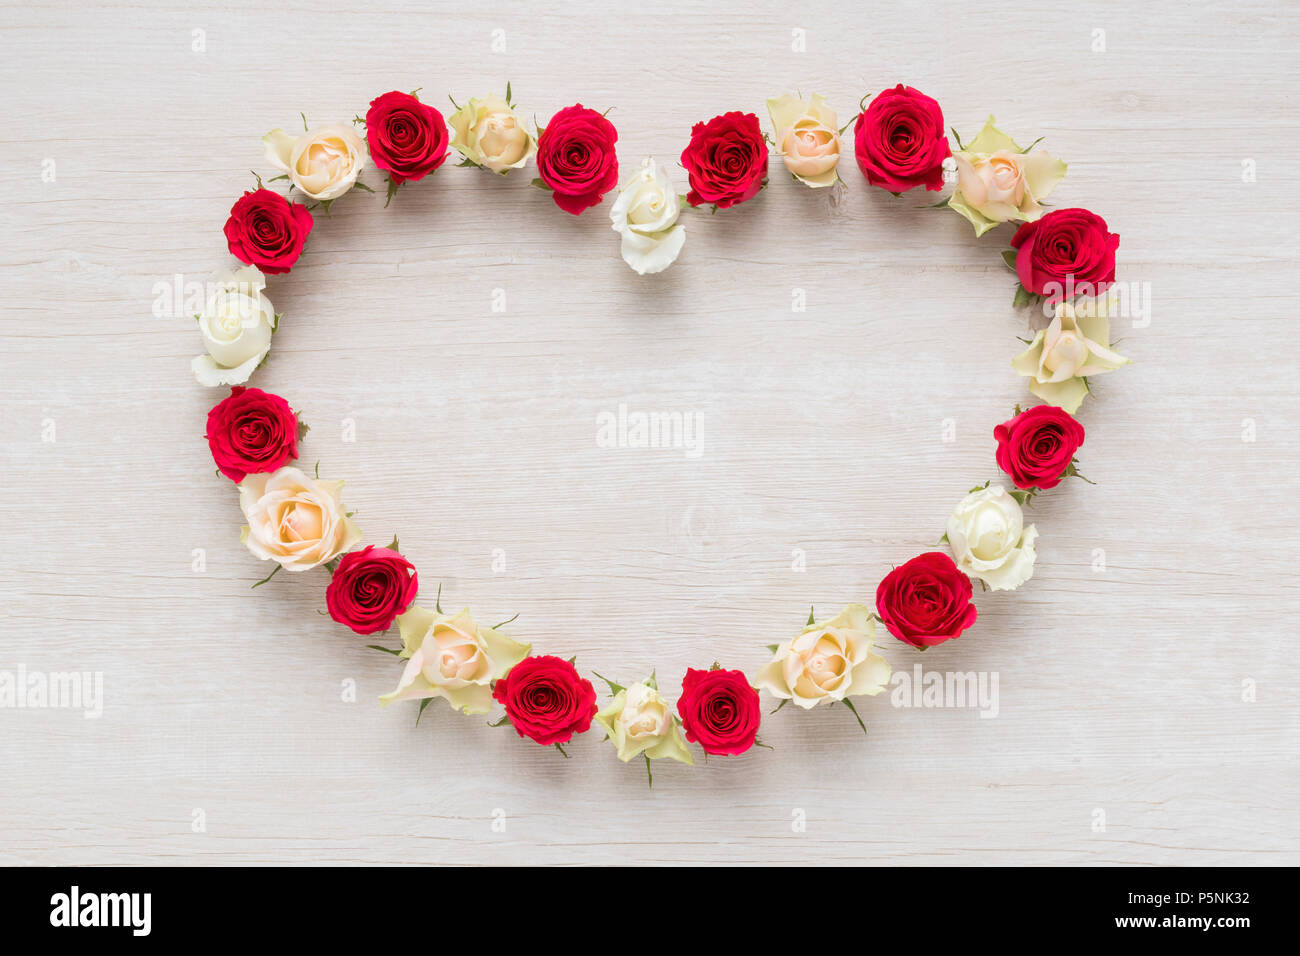 Heart From Red And White Rose Flowers On Rustic Table For March 8